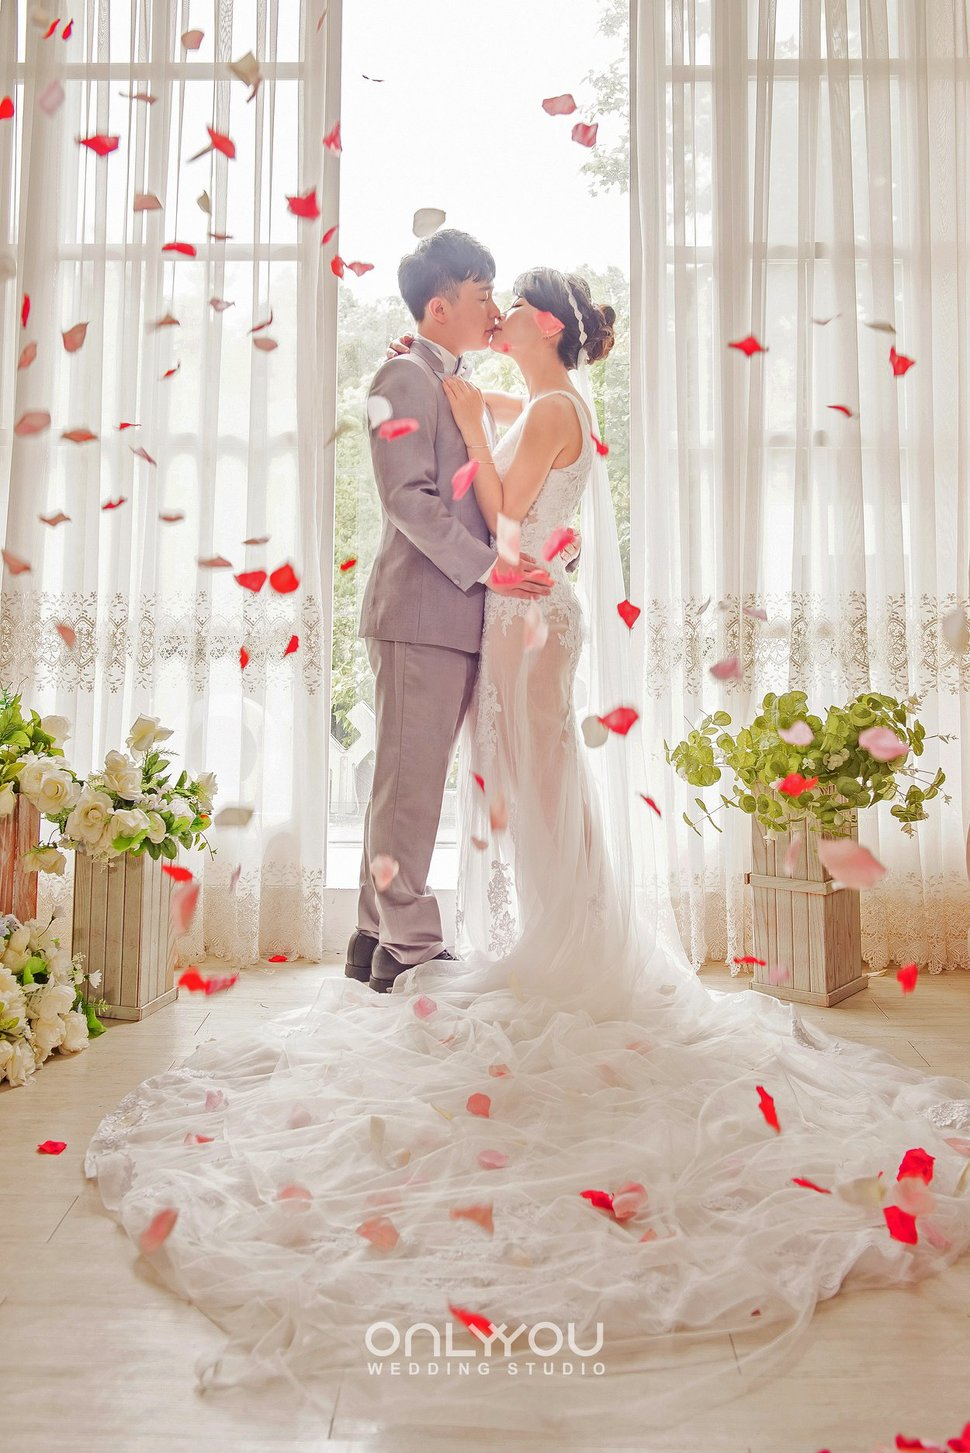 90262759_2794159910639637_1728189003326291968_o - ONLY YOU 唯你婚紗攝影《結婚吧》